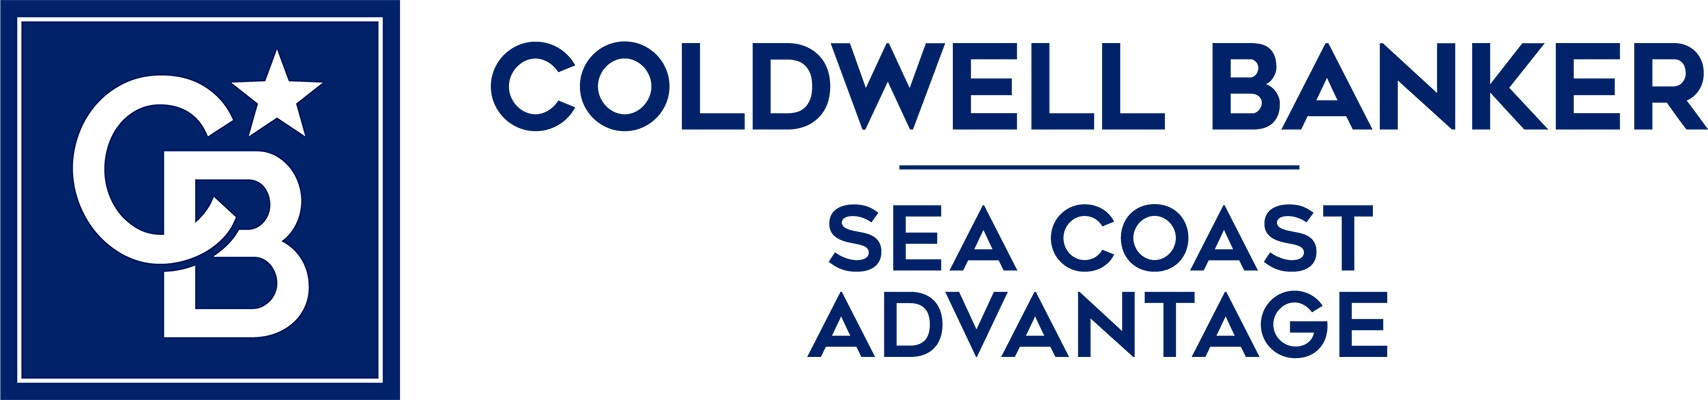 Allison Olson - Coldwell Banker Sea Coast Advantage Realty Logo